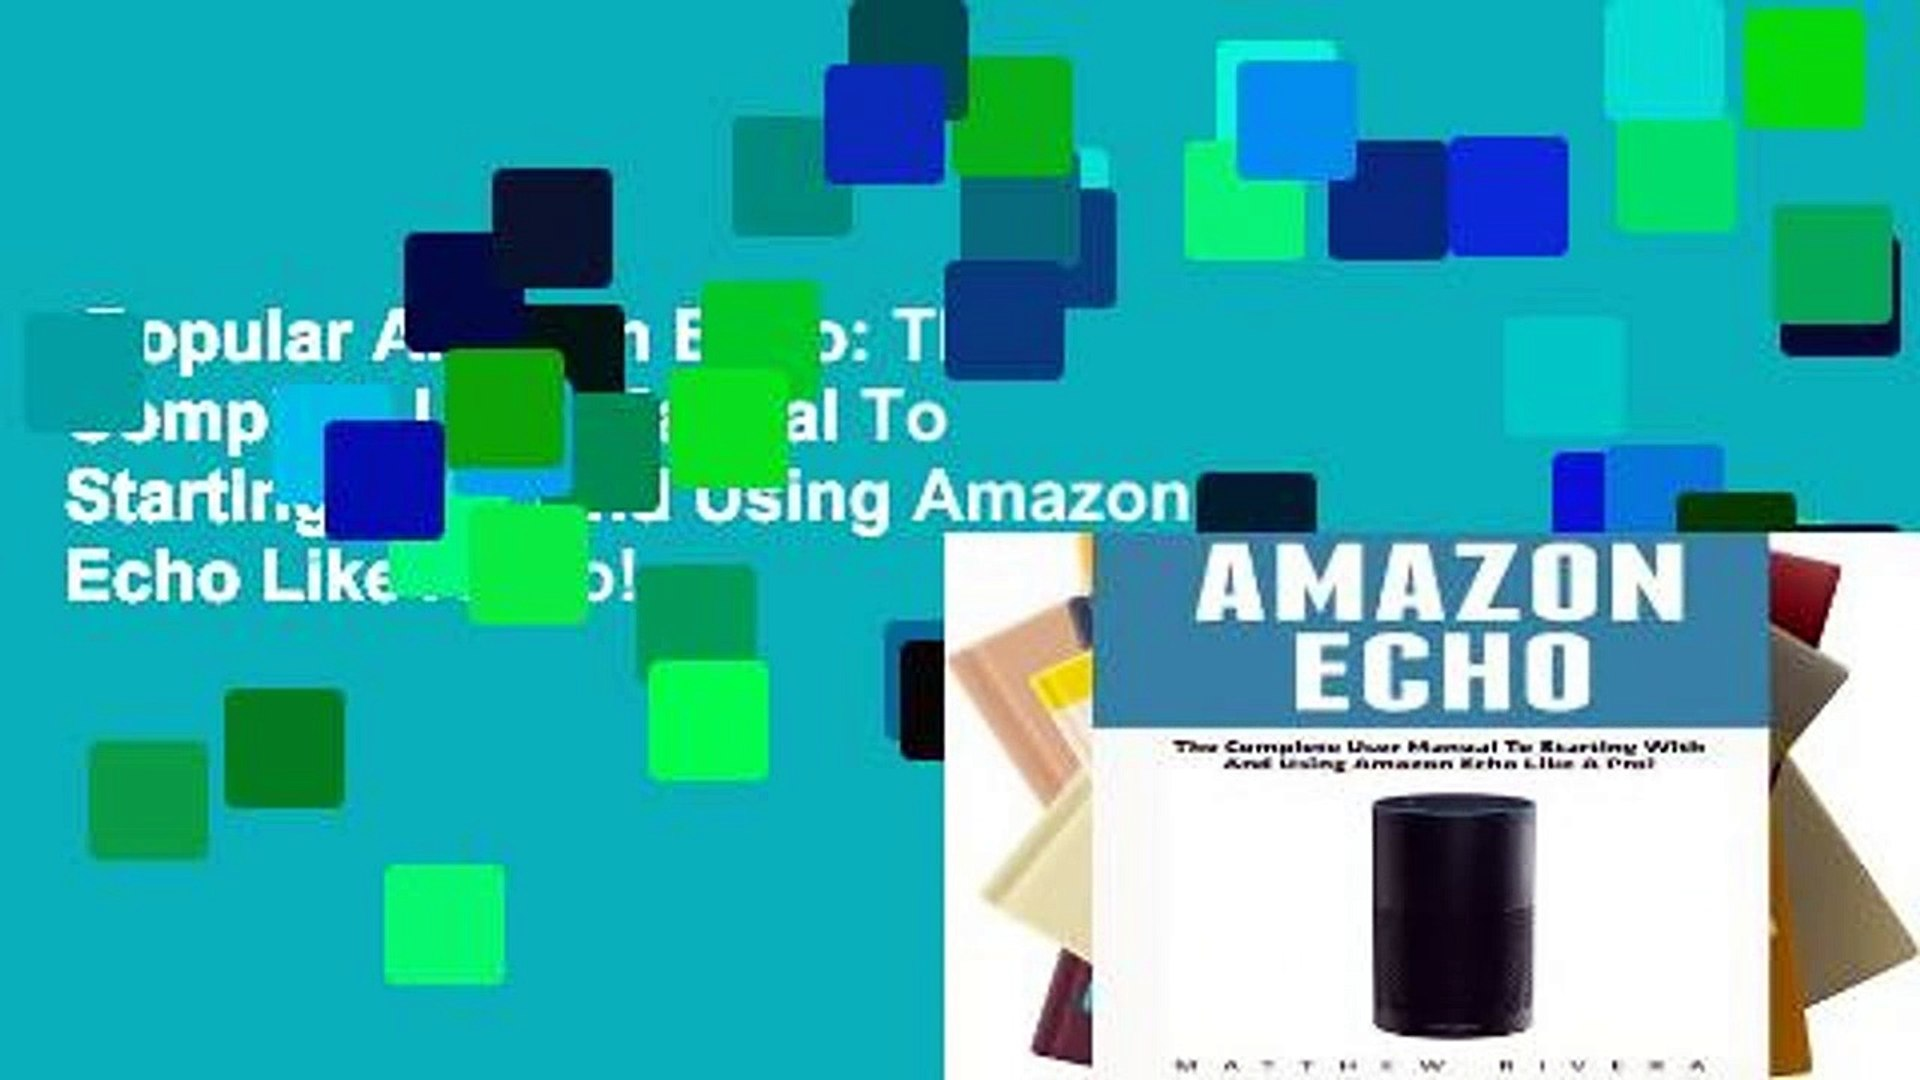 Popular Amazon Echo: The Complete User Manual To Starting With And Using Amazon Echo Like A Pro!